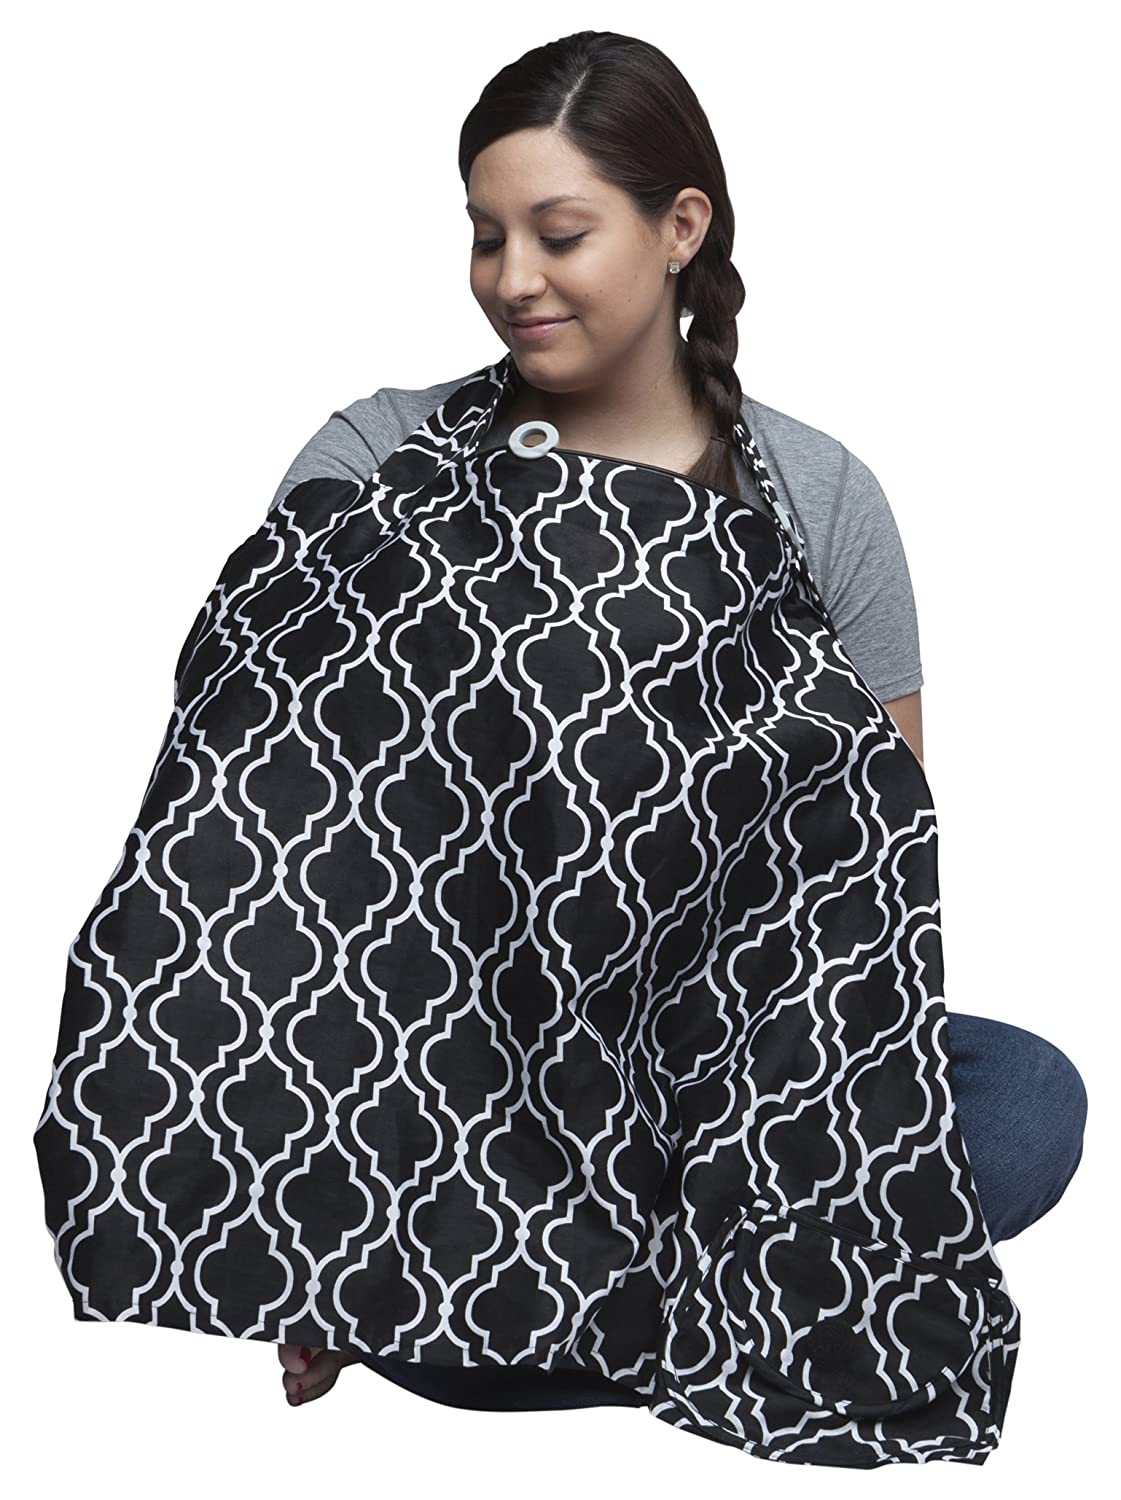 Boppy Nursing Cover, Seville 5600483K 6PK